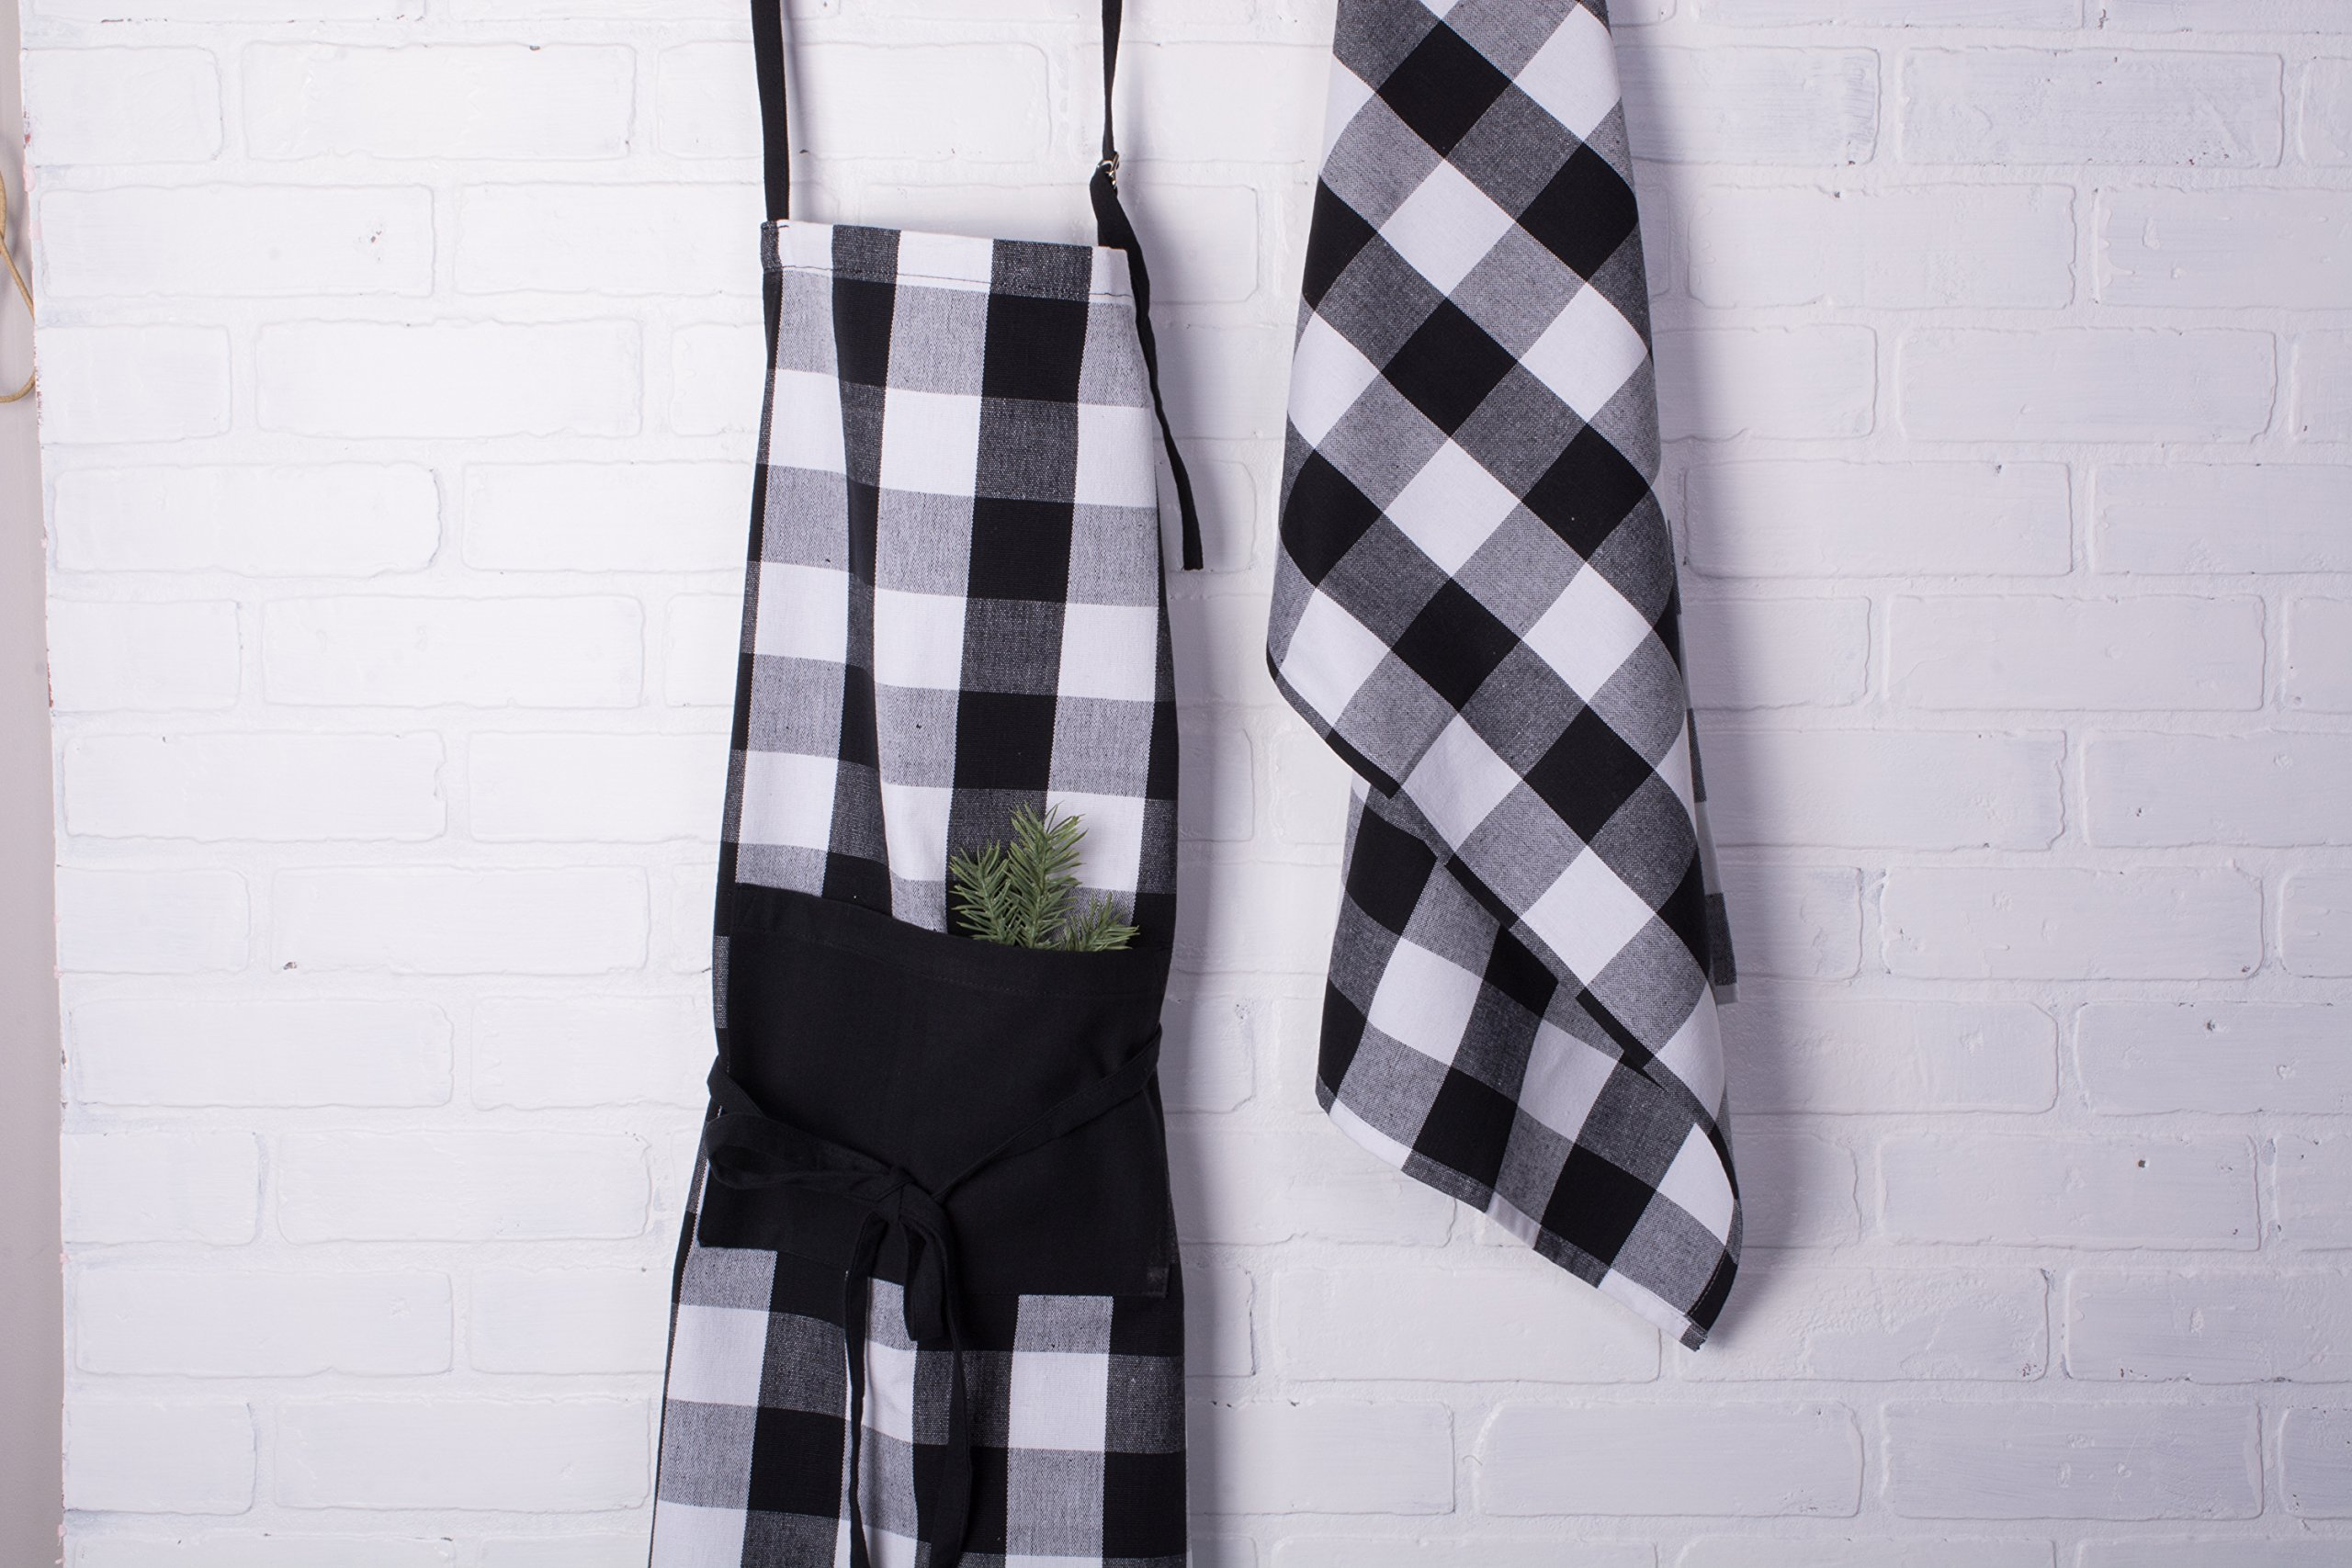 DII Cotton Buffalo Check Plaid Dish Towels, (20x30, Set of 3) Monogrammable Oversized Kitchen Towels for Drying, Cleaning, Cooking, Baking - Black & White by DII (Image #5)